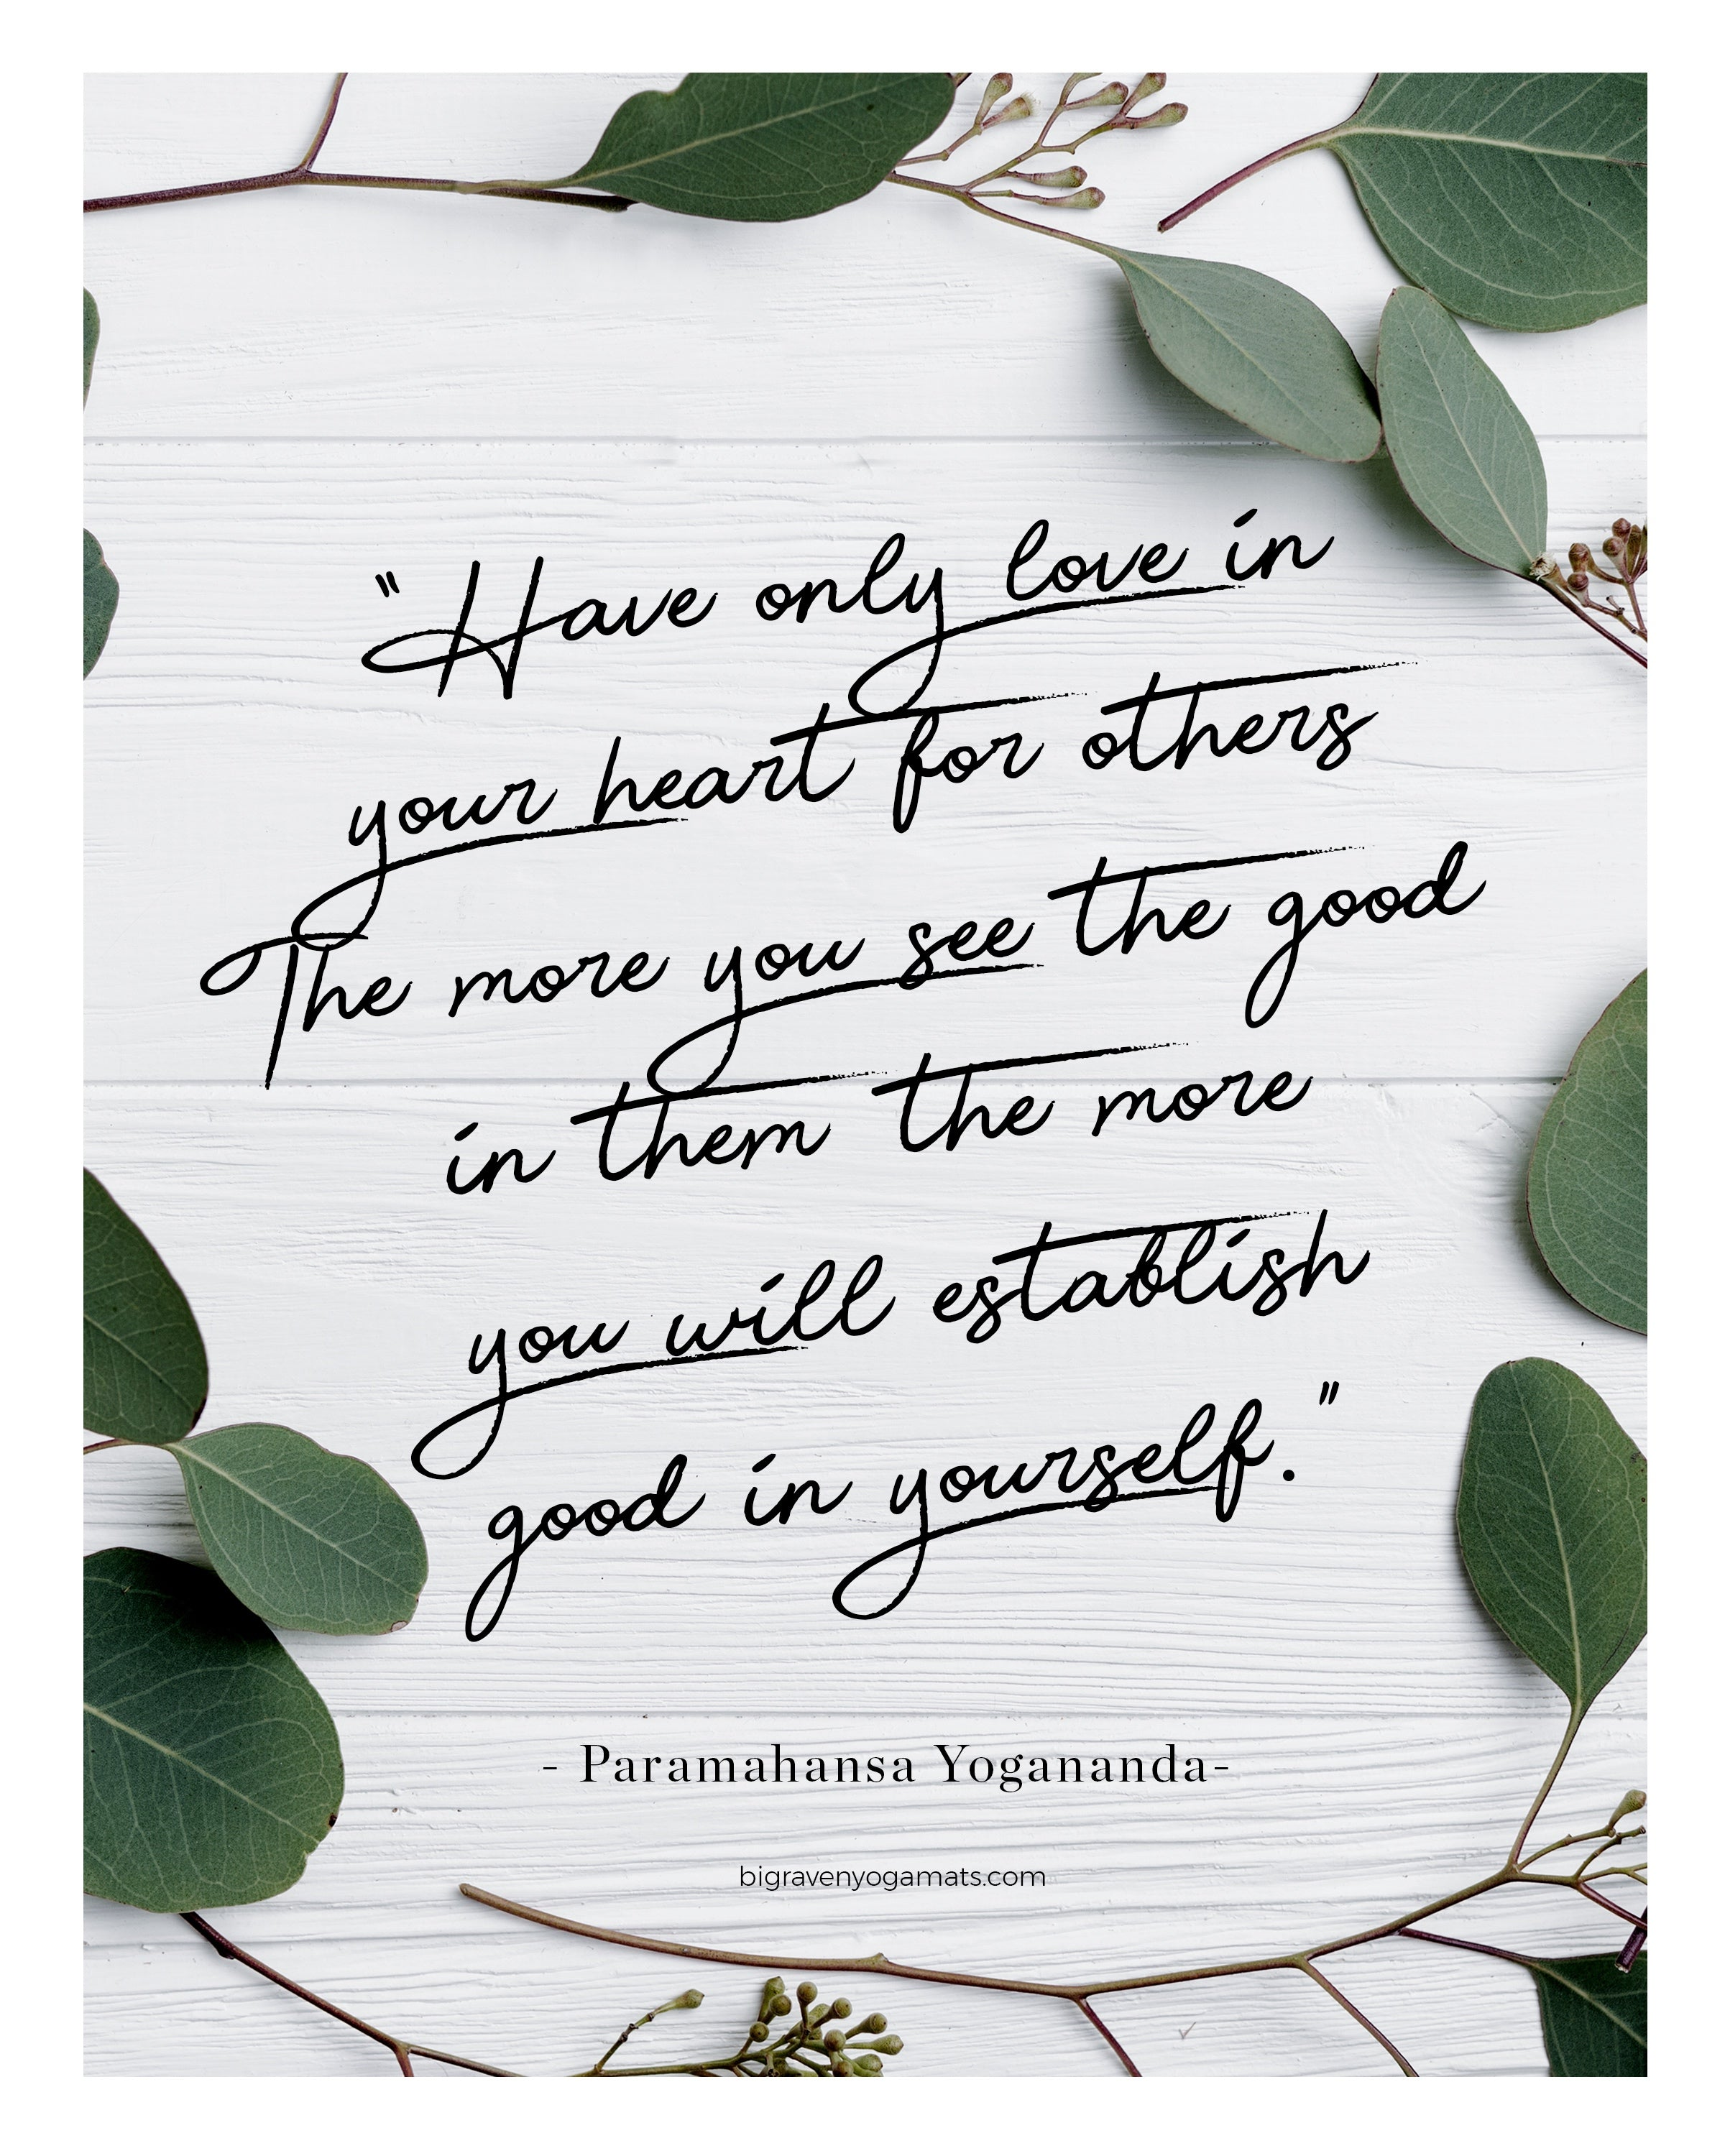 Have only love in your heart for others. The more you see the good in them the more you will establish good in yourself. Paramahansa Yogananda.